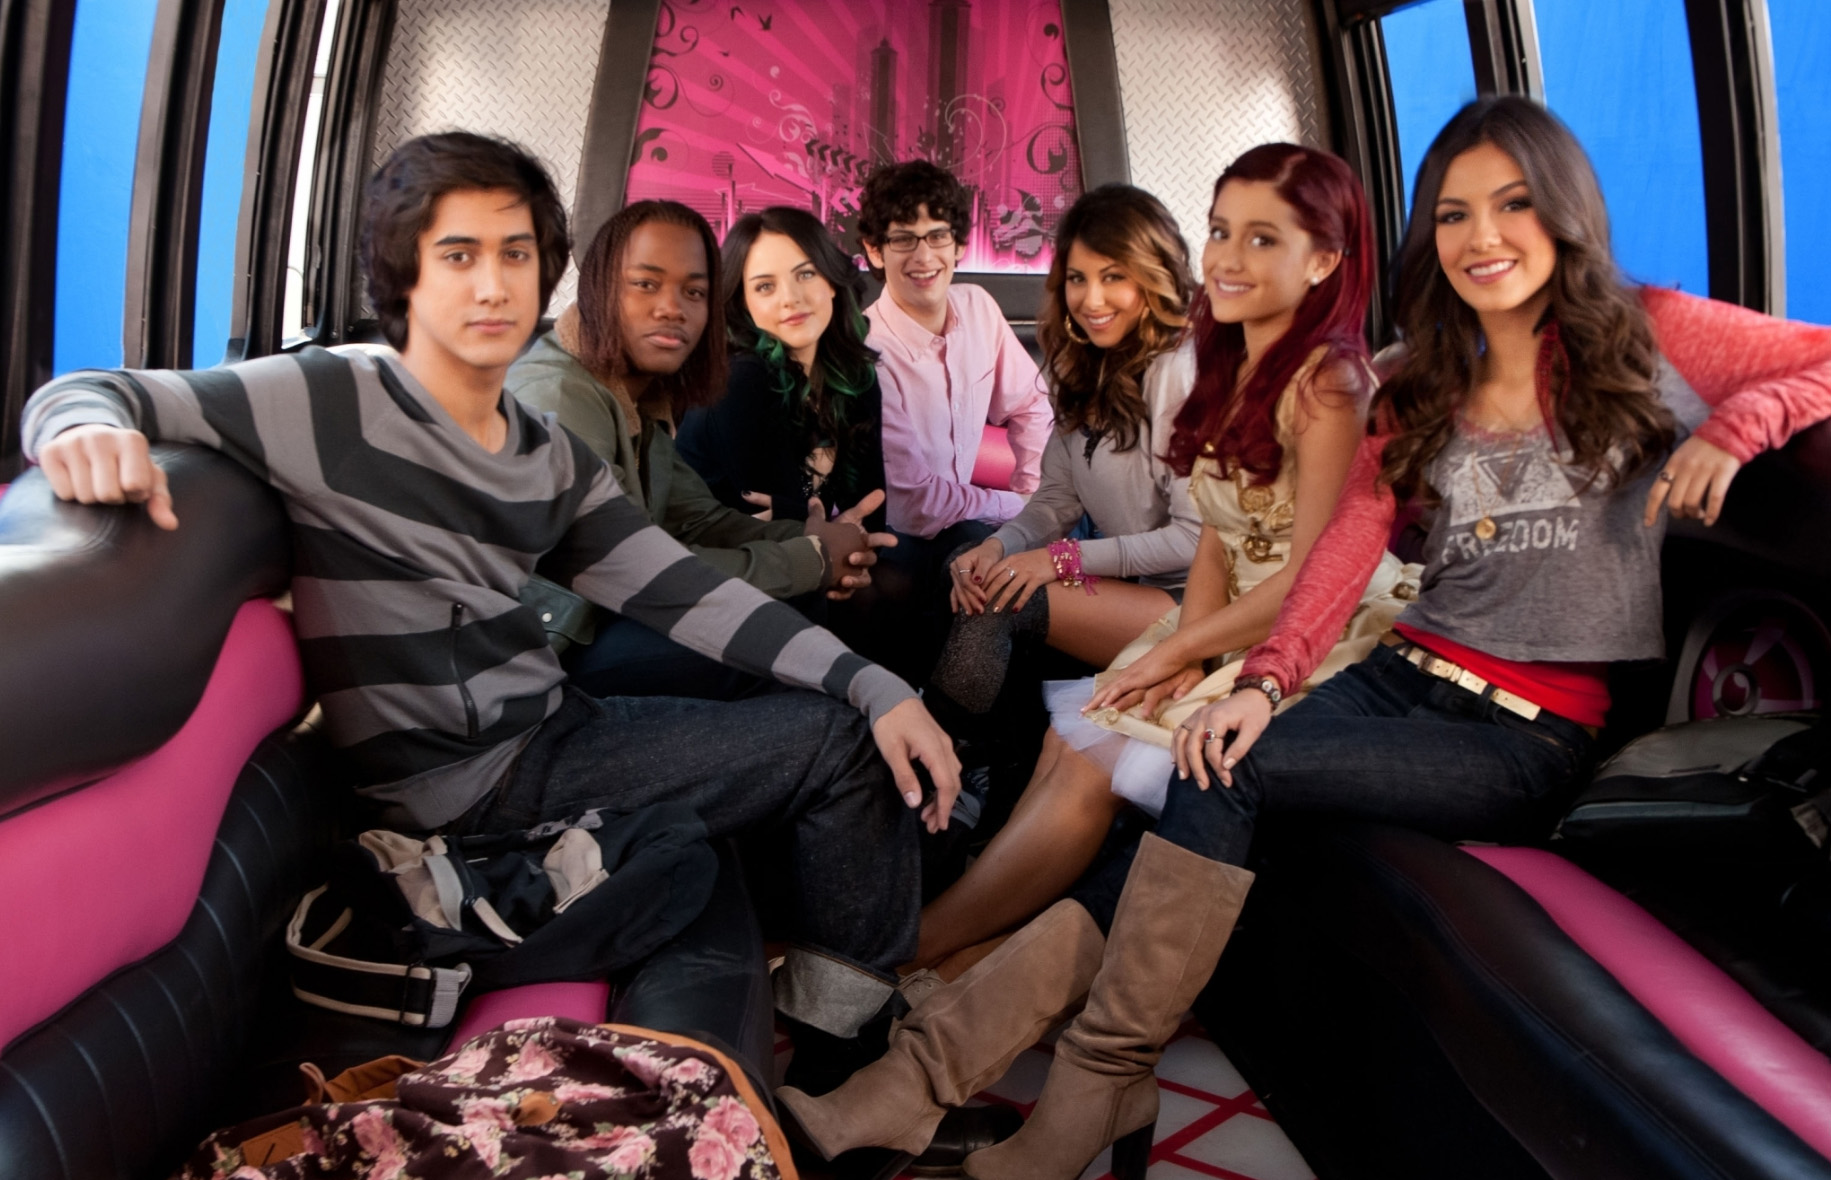 Victorious tori and andre dating 1